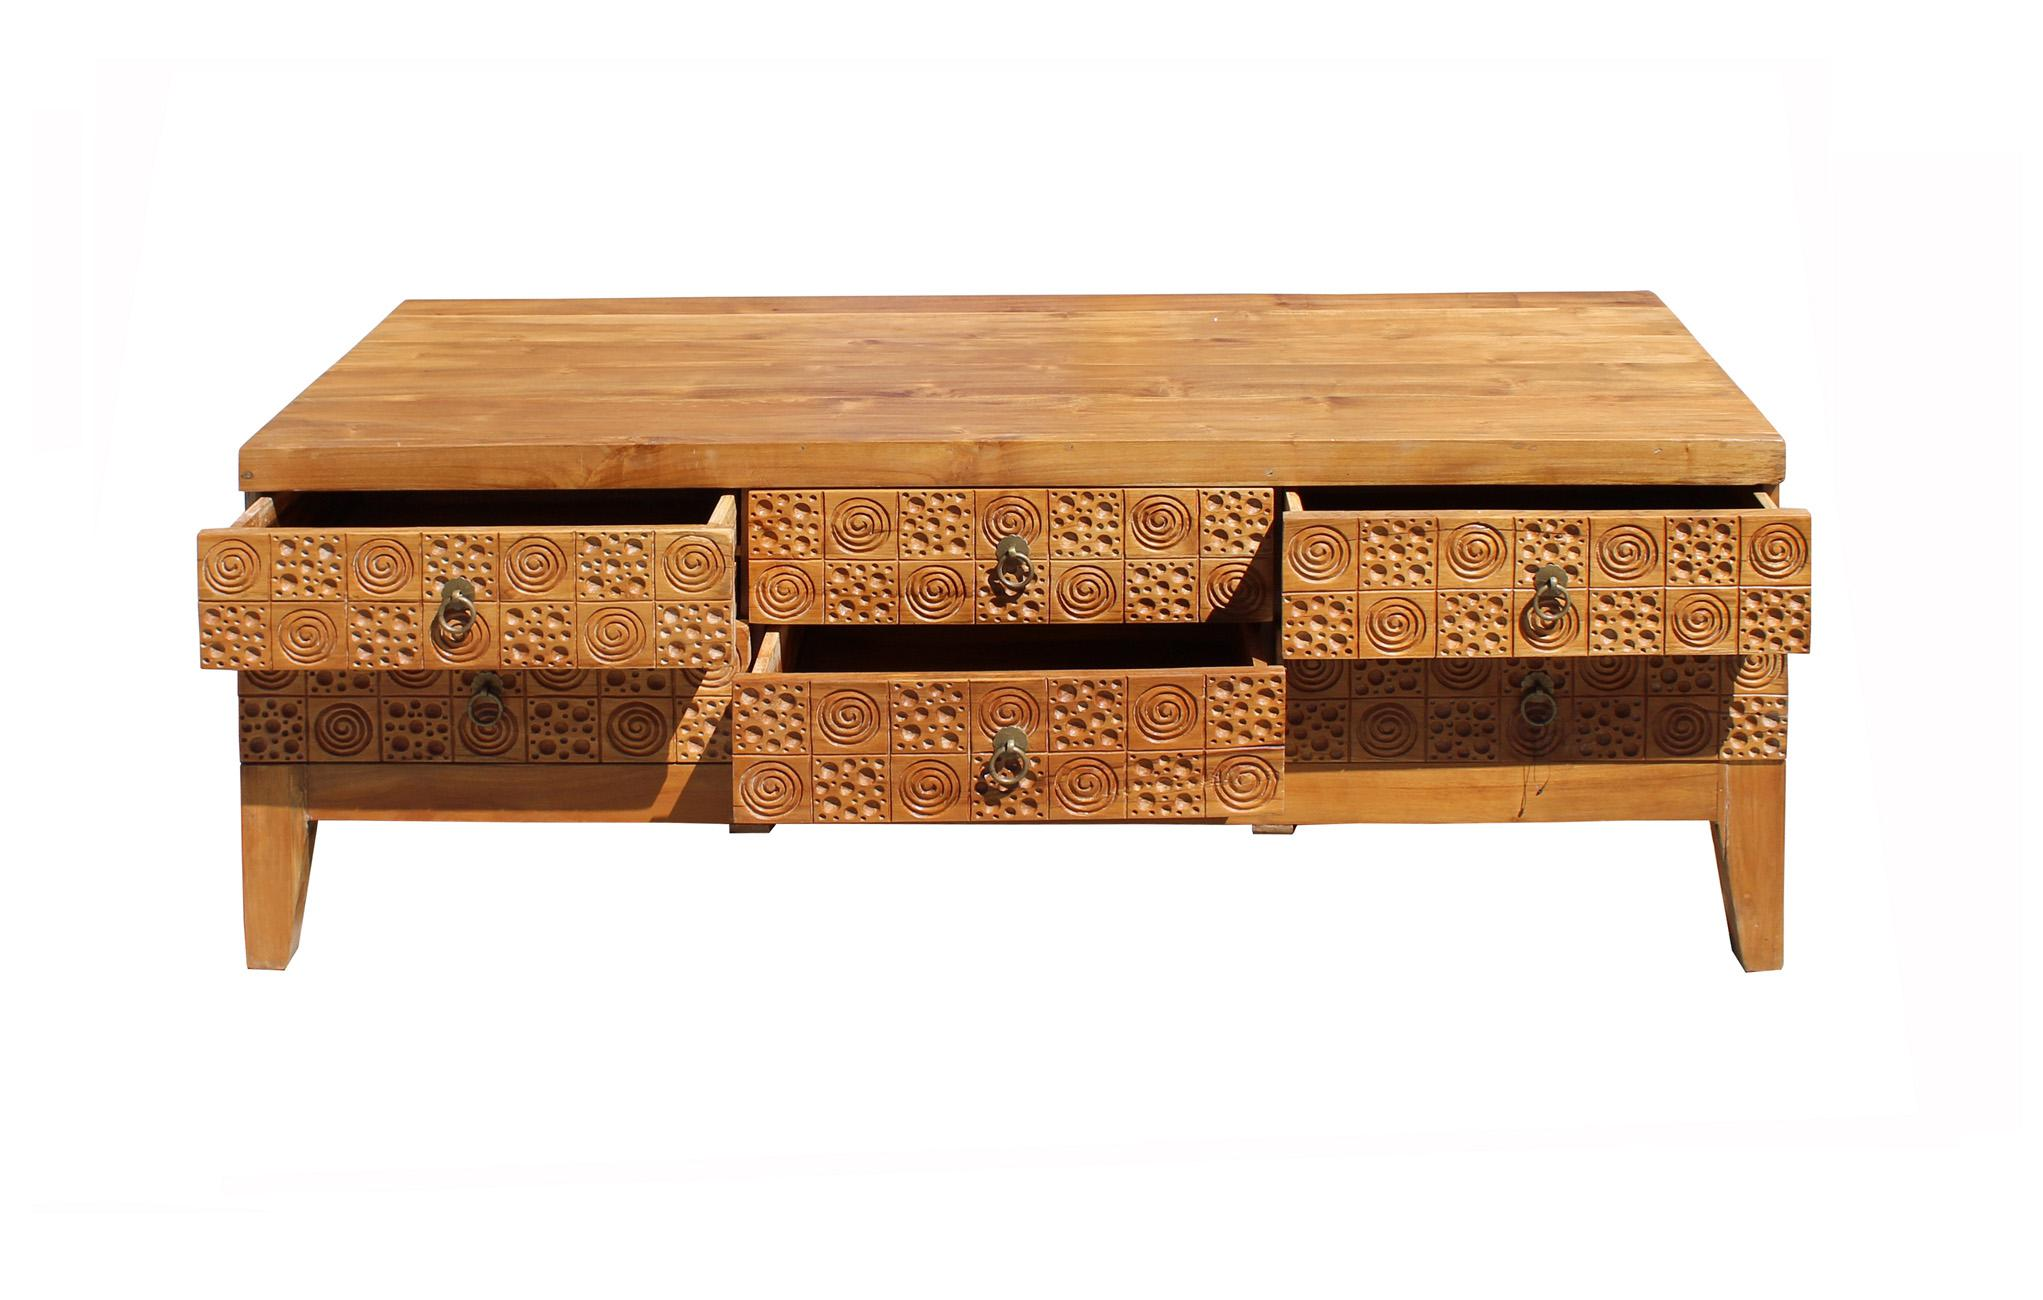 Light wood stain geometric relief carving low dresser drawers